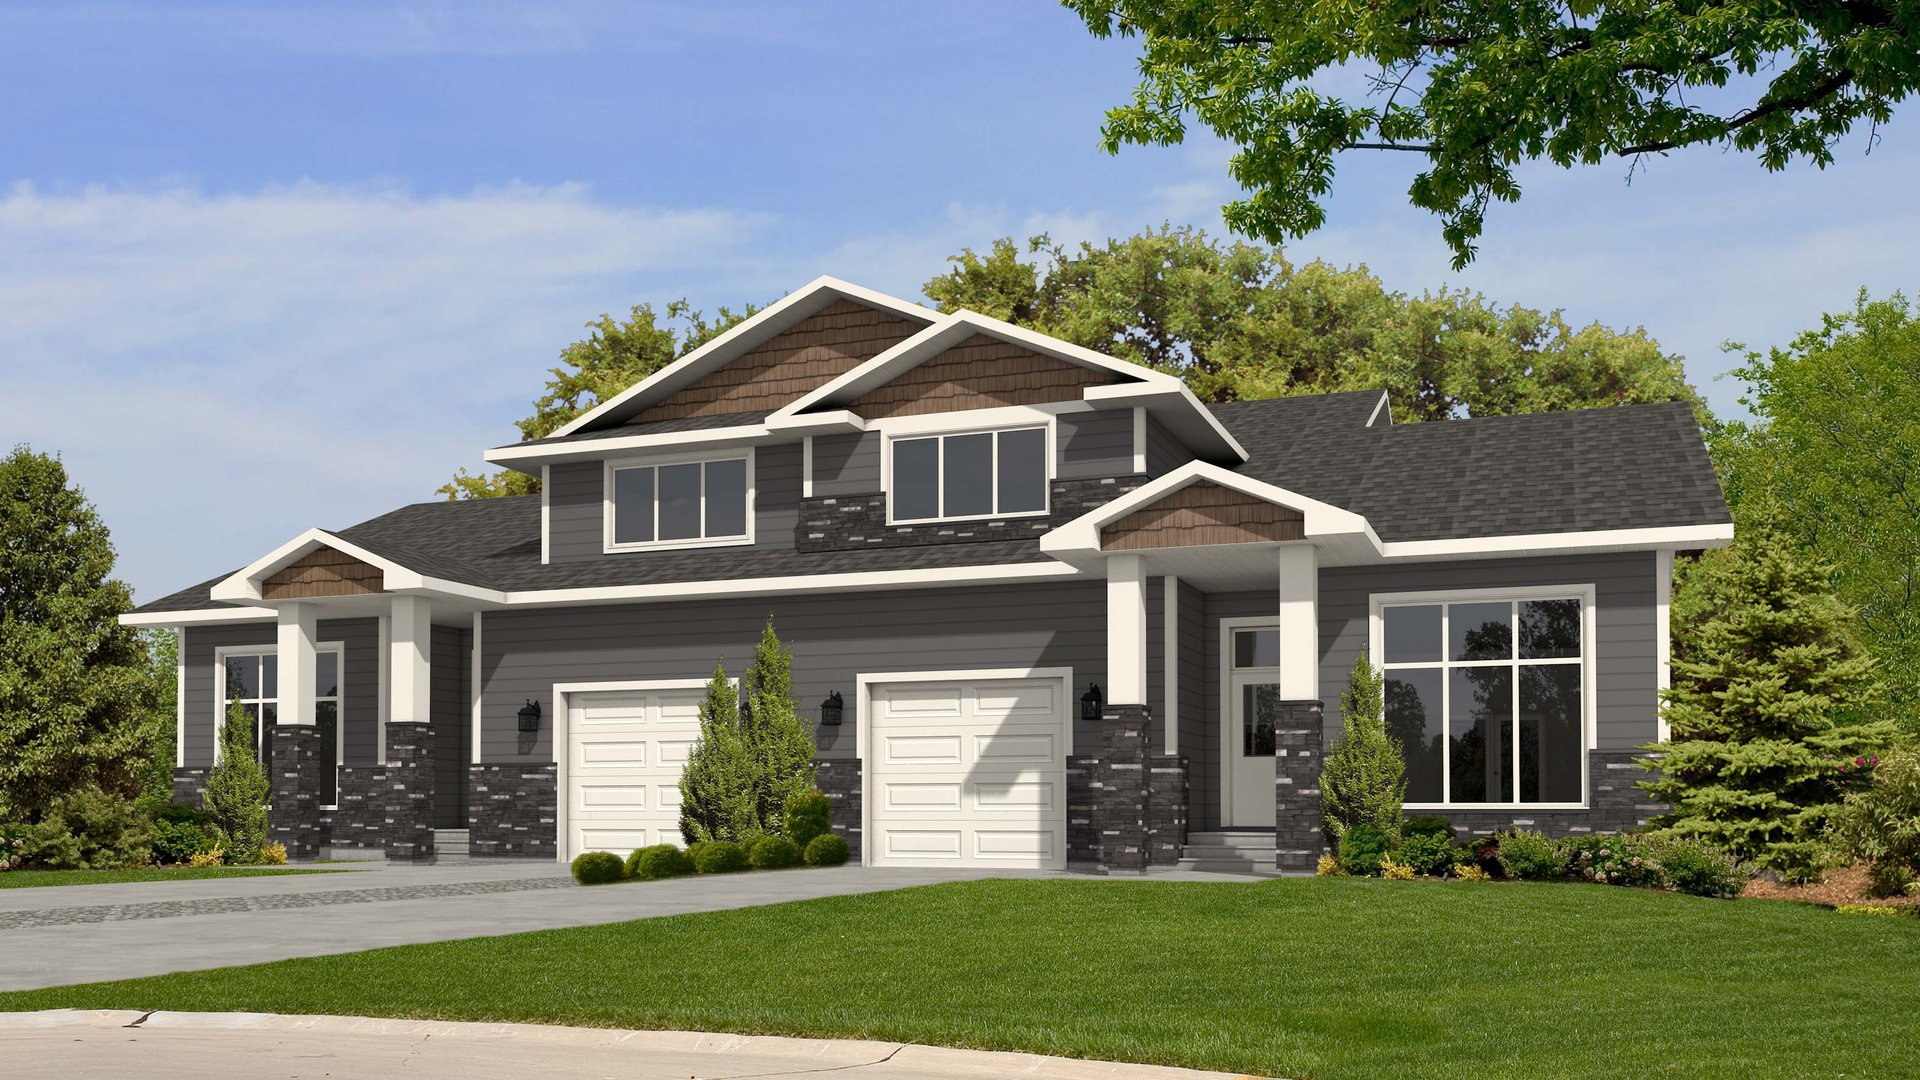 Nelson Homes Duplex modular home designs.jpg